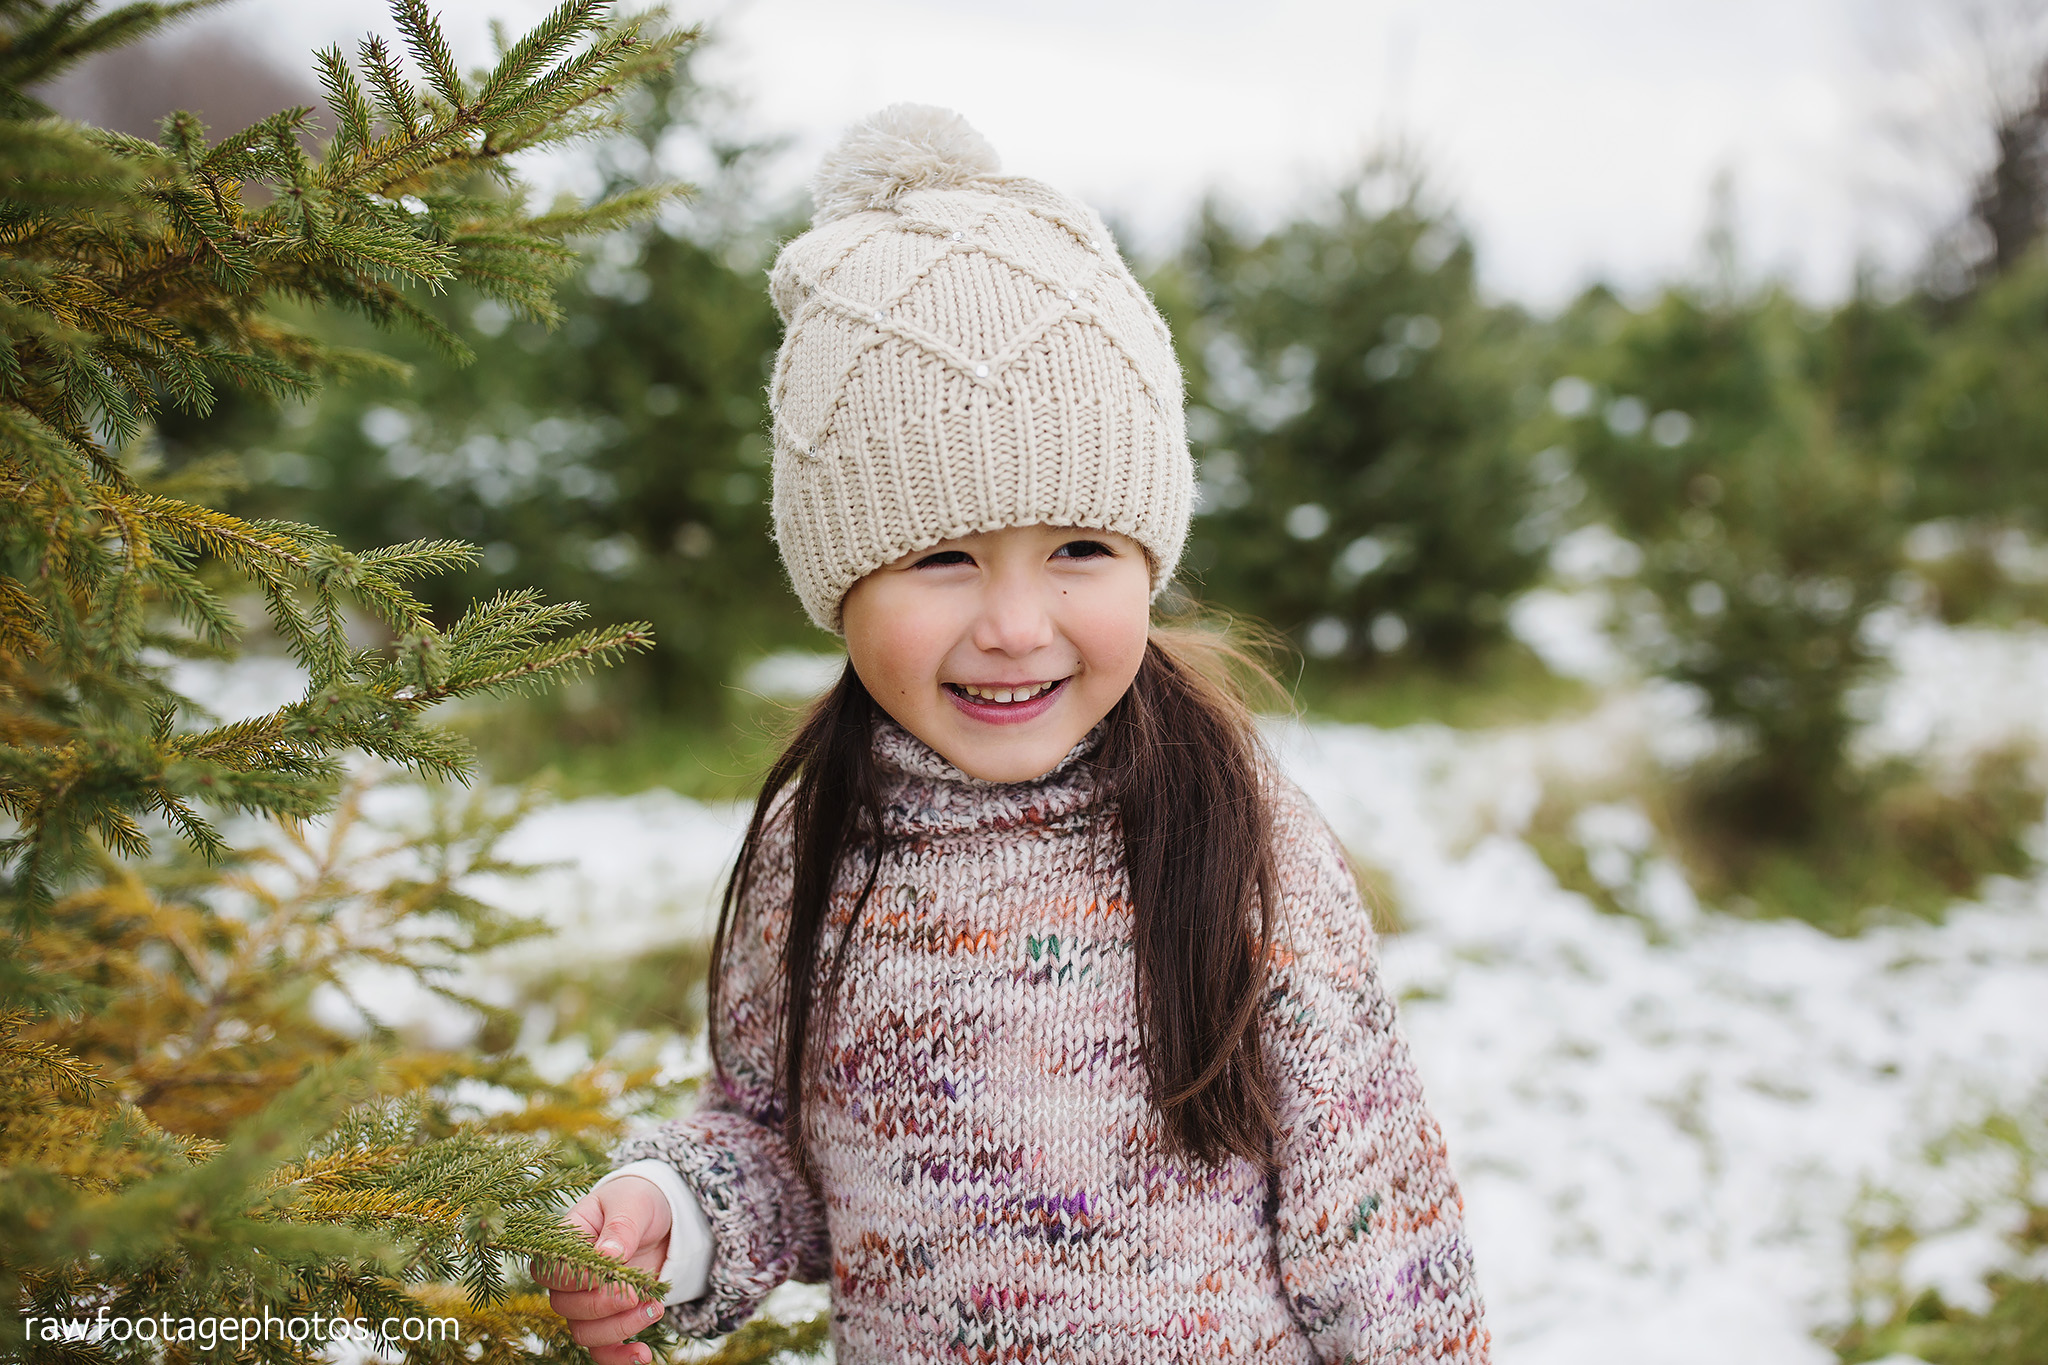 london_ontario_family_photographer-raw_footage_photography-tree_farm_minis-christmas_sessions-winter0006.jpg